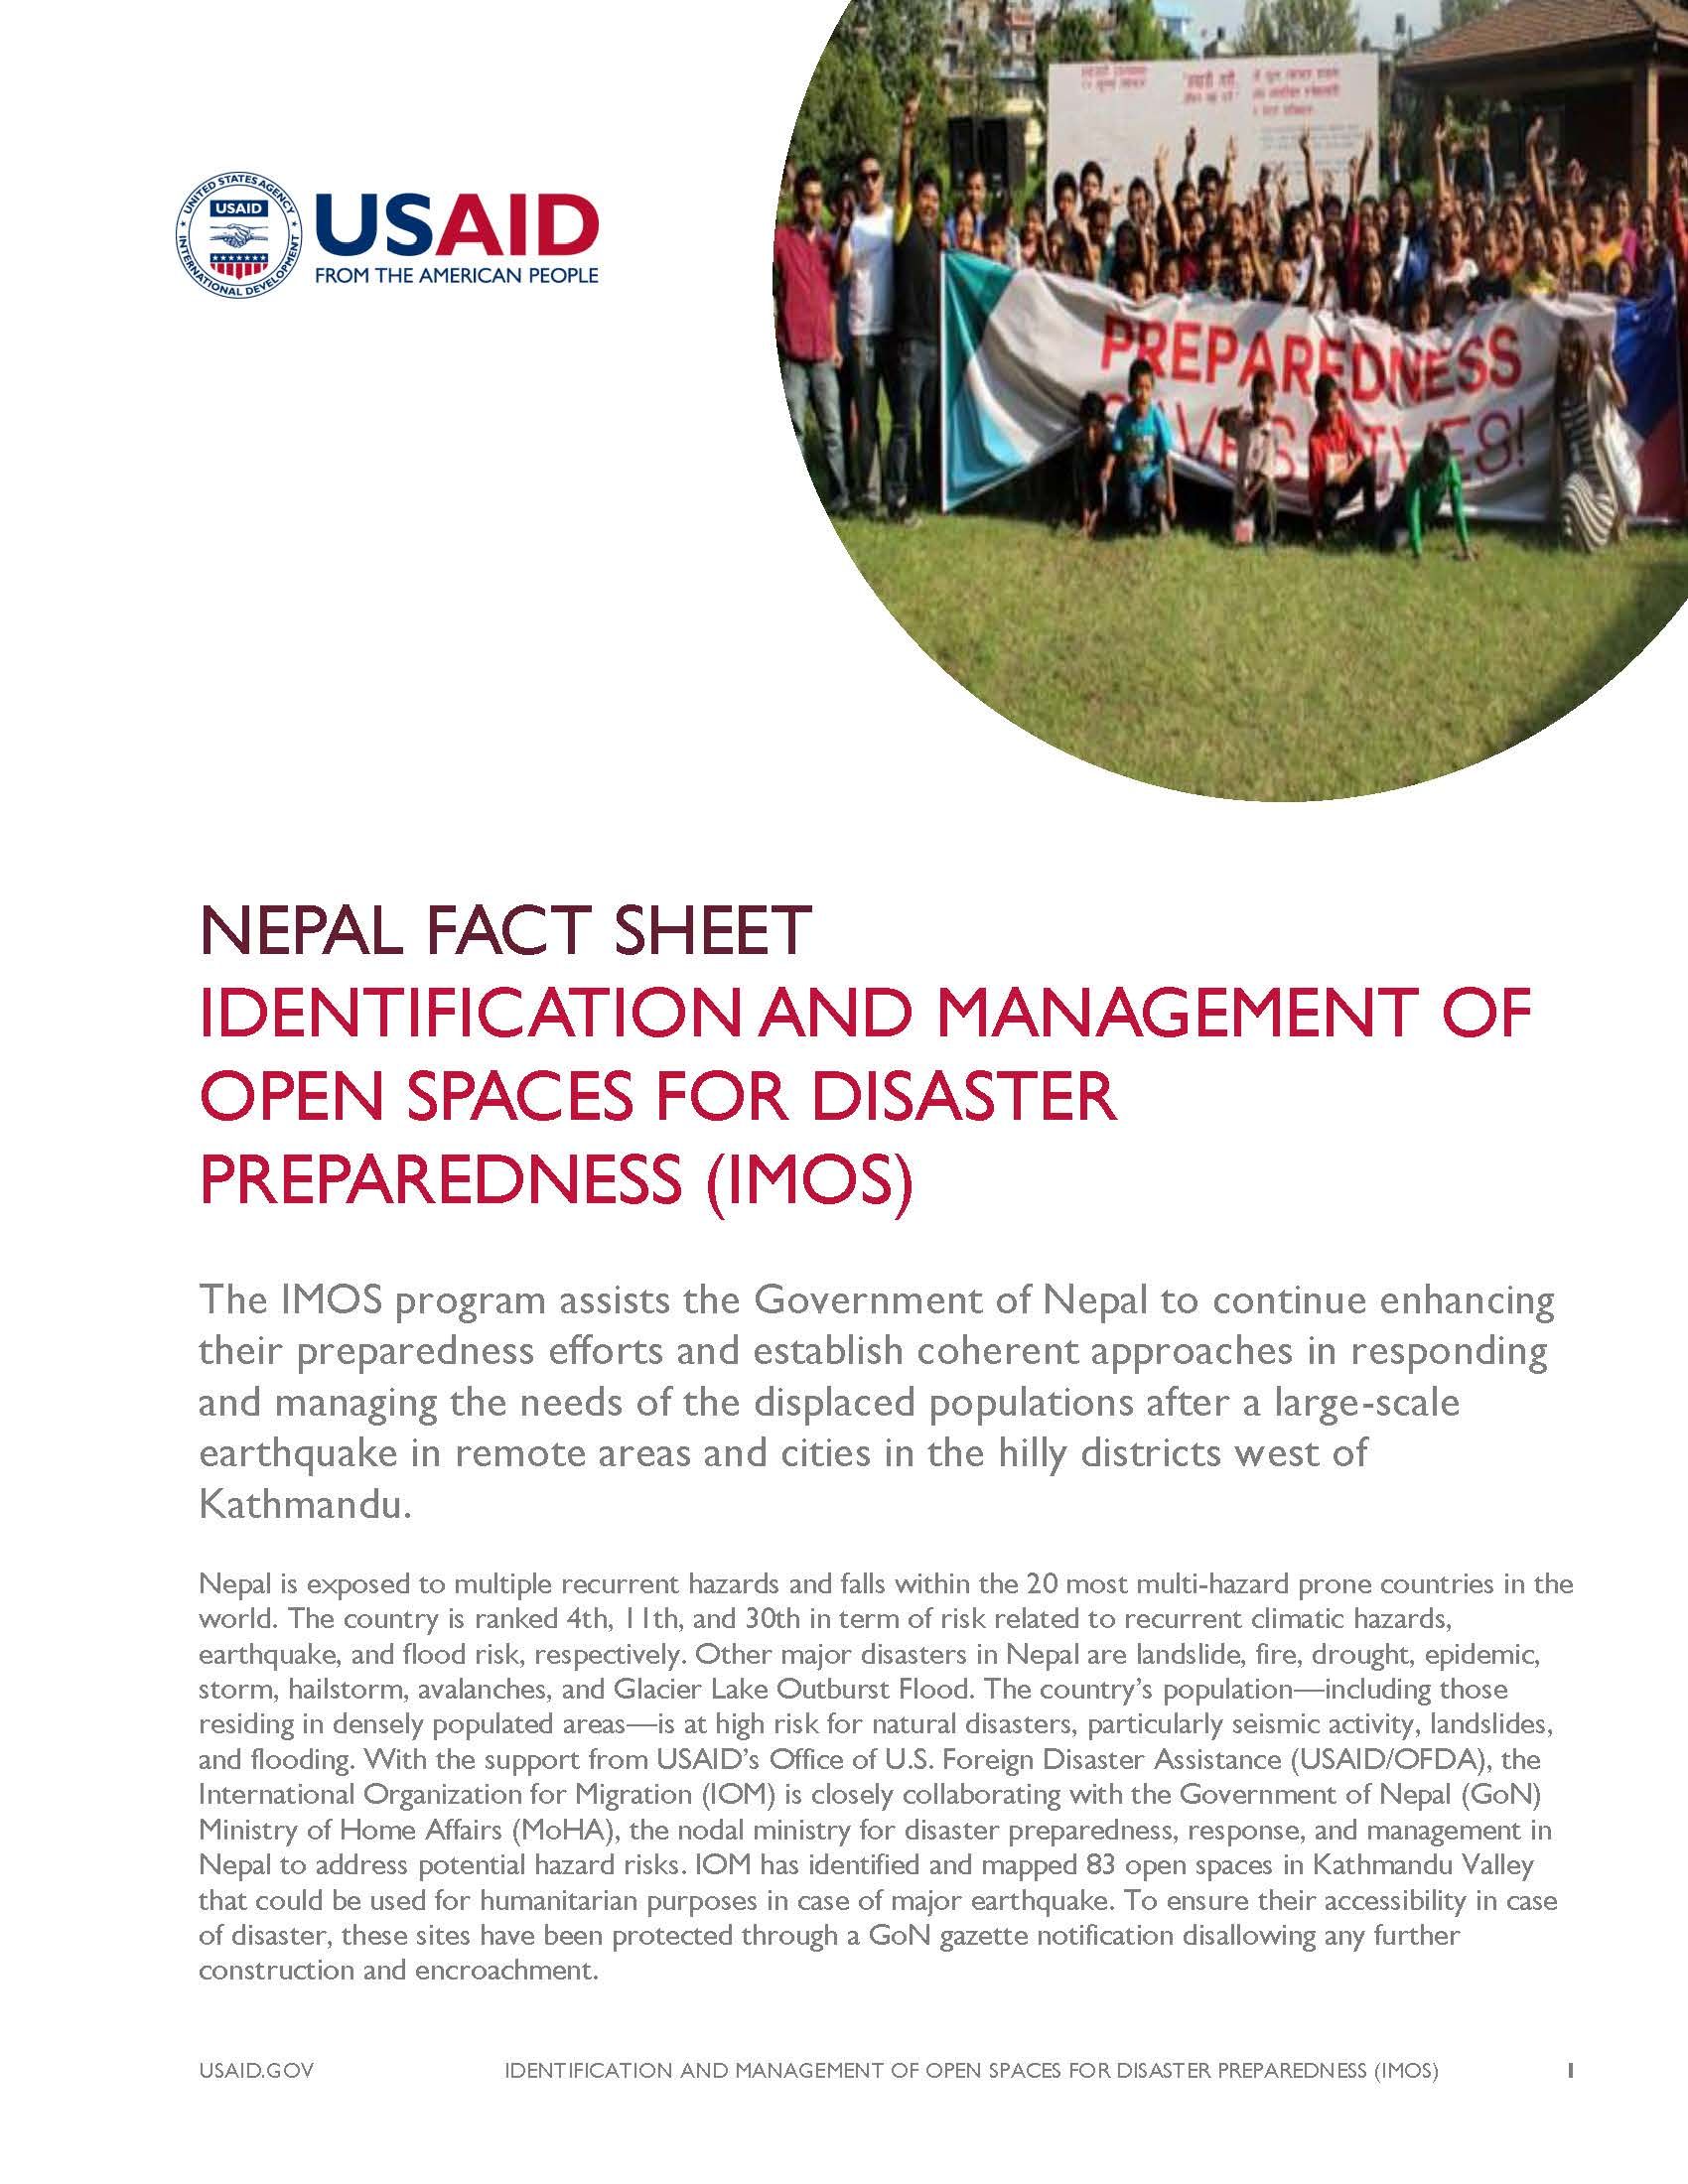 Fact Sheet: IDENTIFICATION AND MANAGEMENT OF OPEN SPACES FOR DISASTER PREPAREDNESS (IMOS)